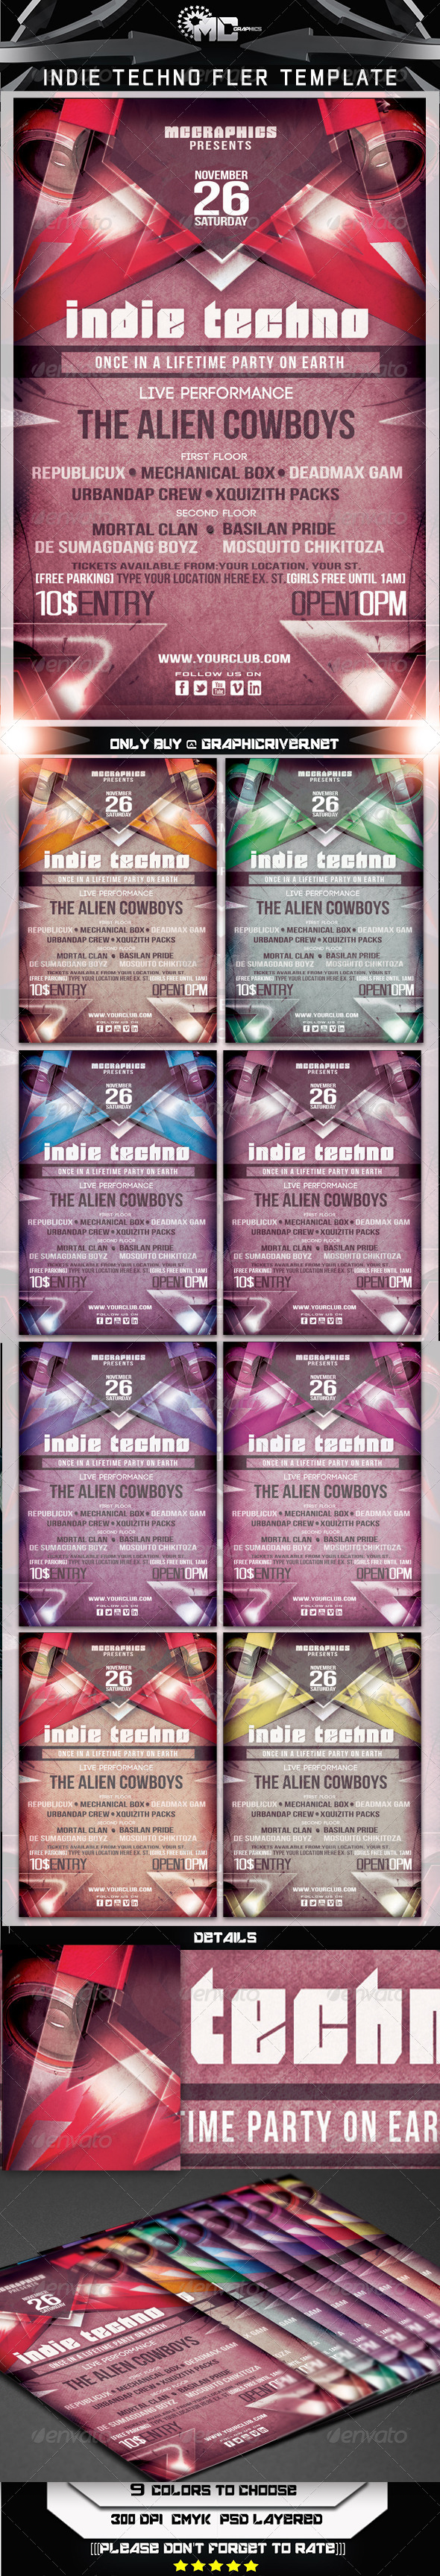 Indie Techno Flyer Template - Clubs & Parties Events